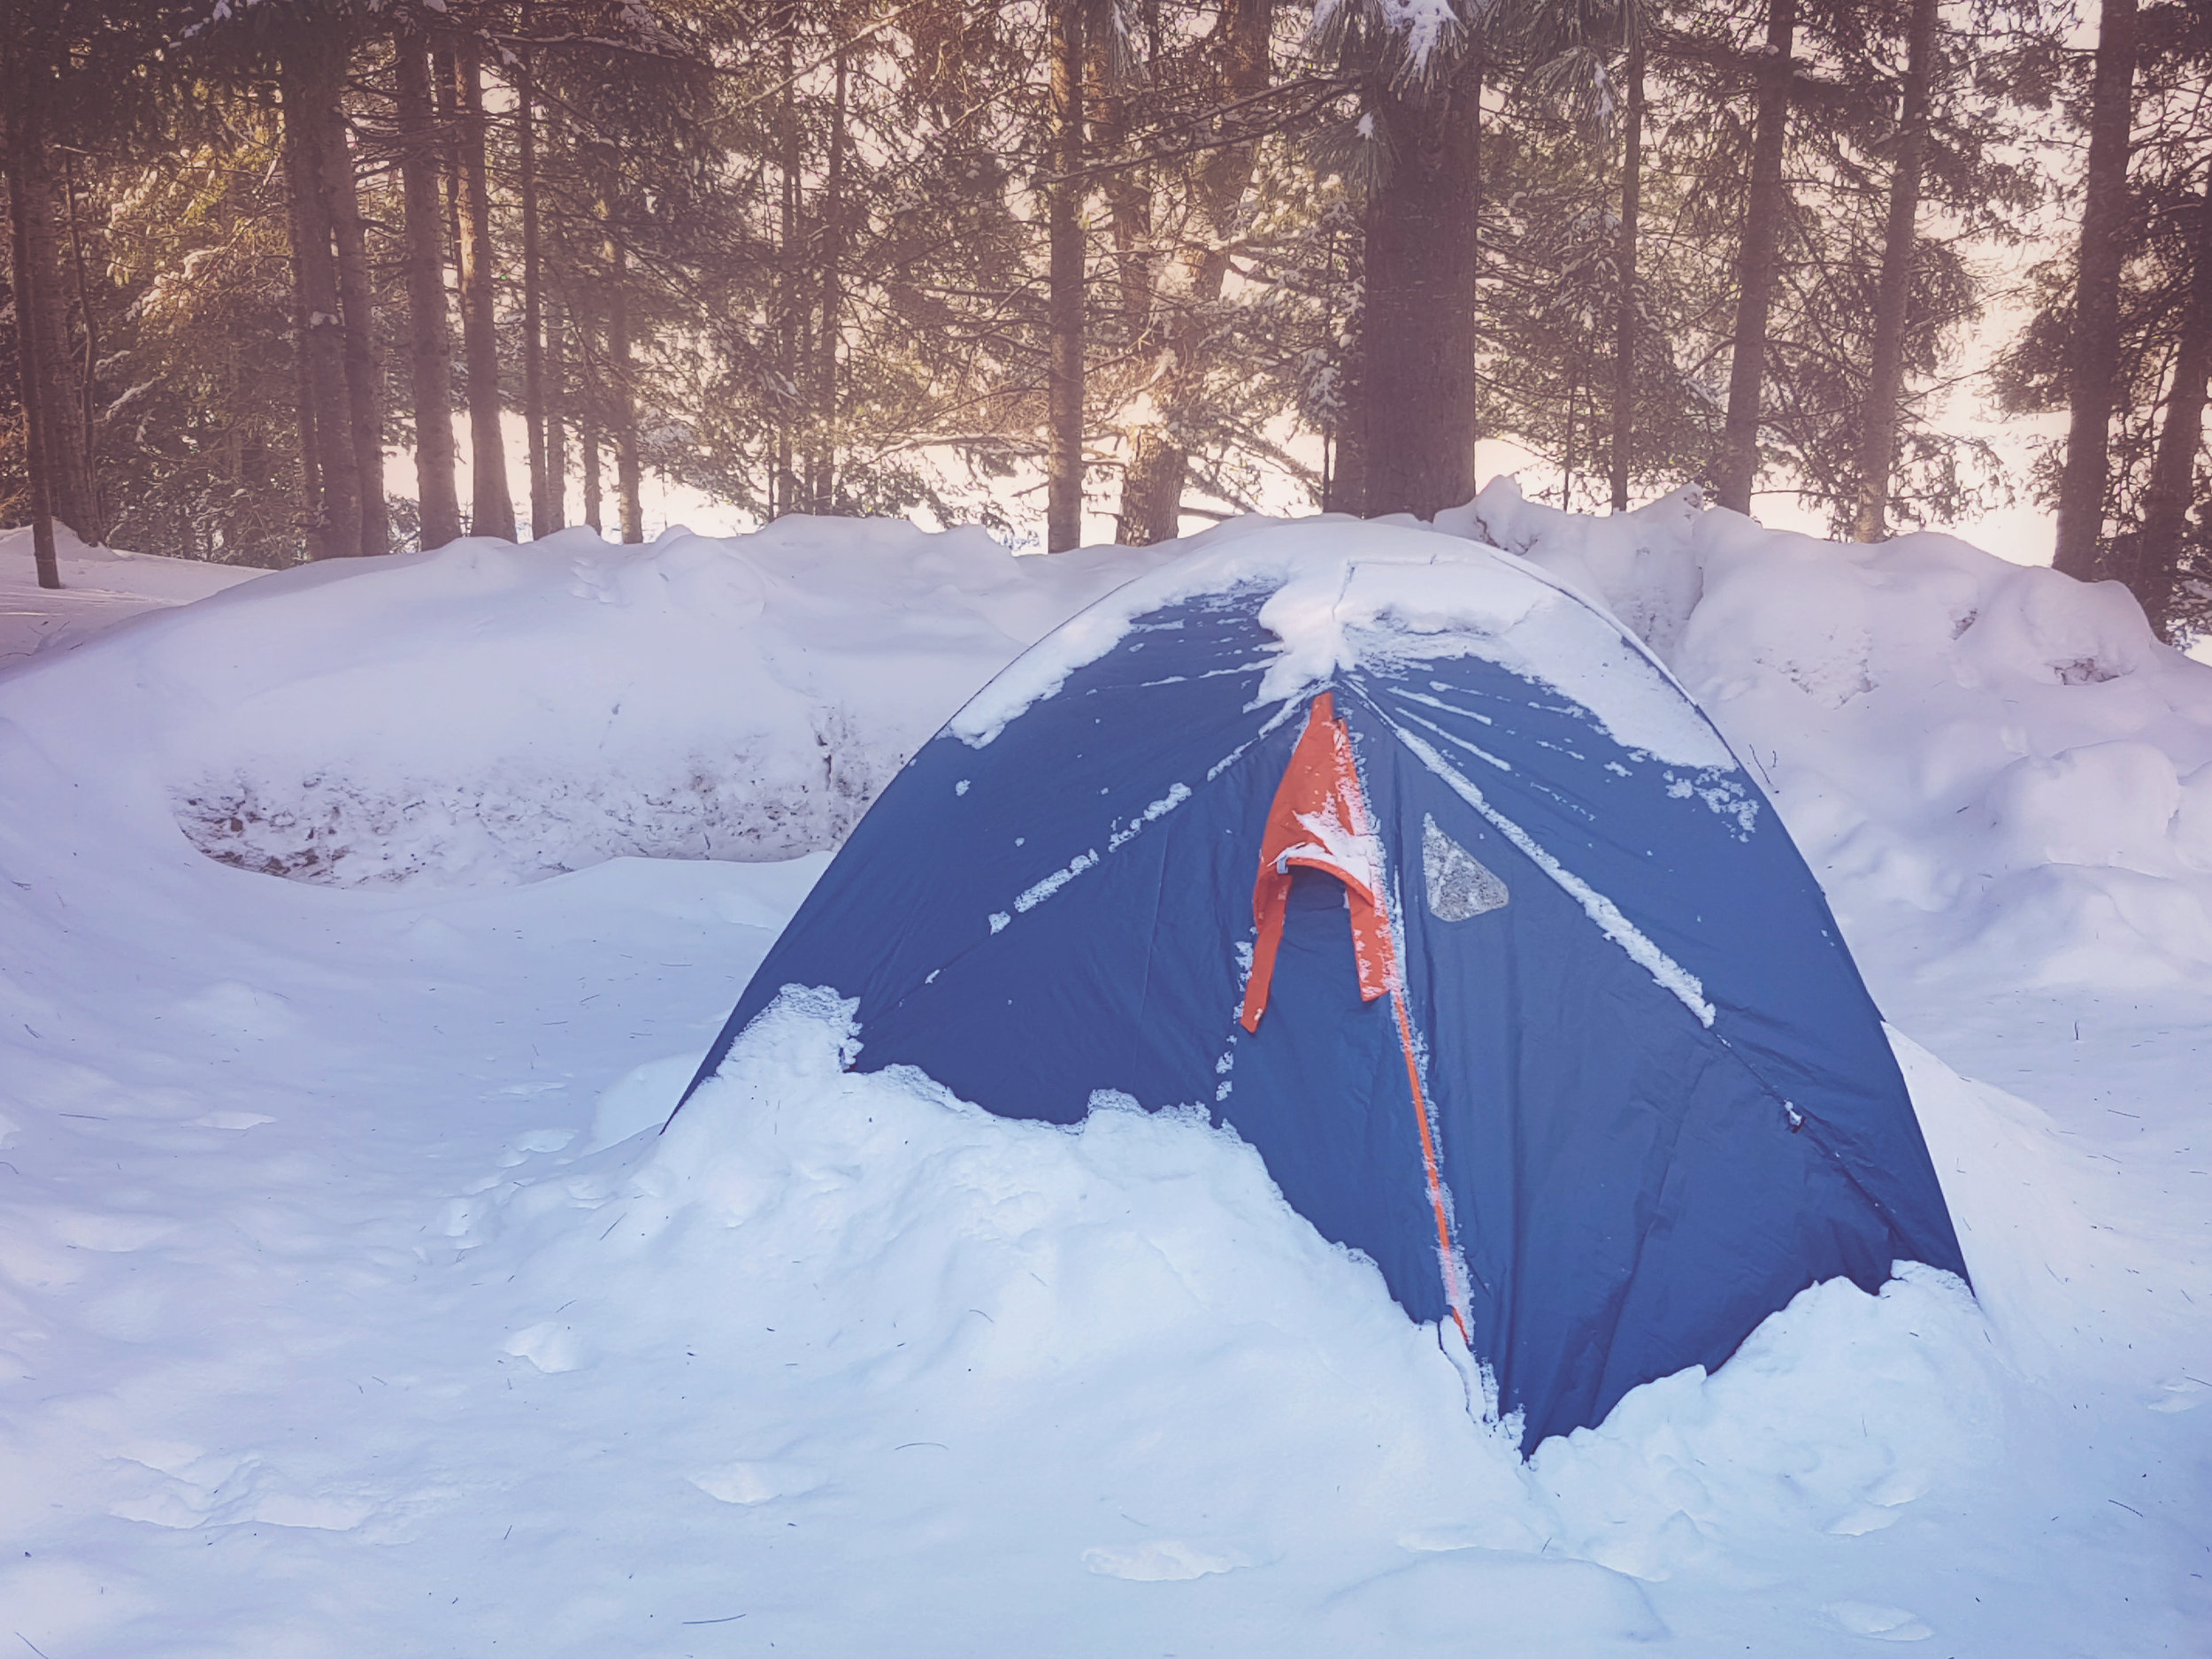 winter camping - across the blue planet